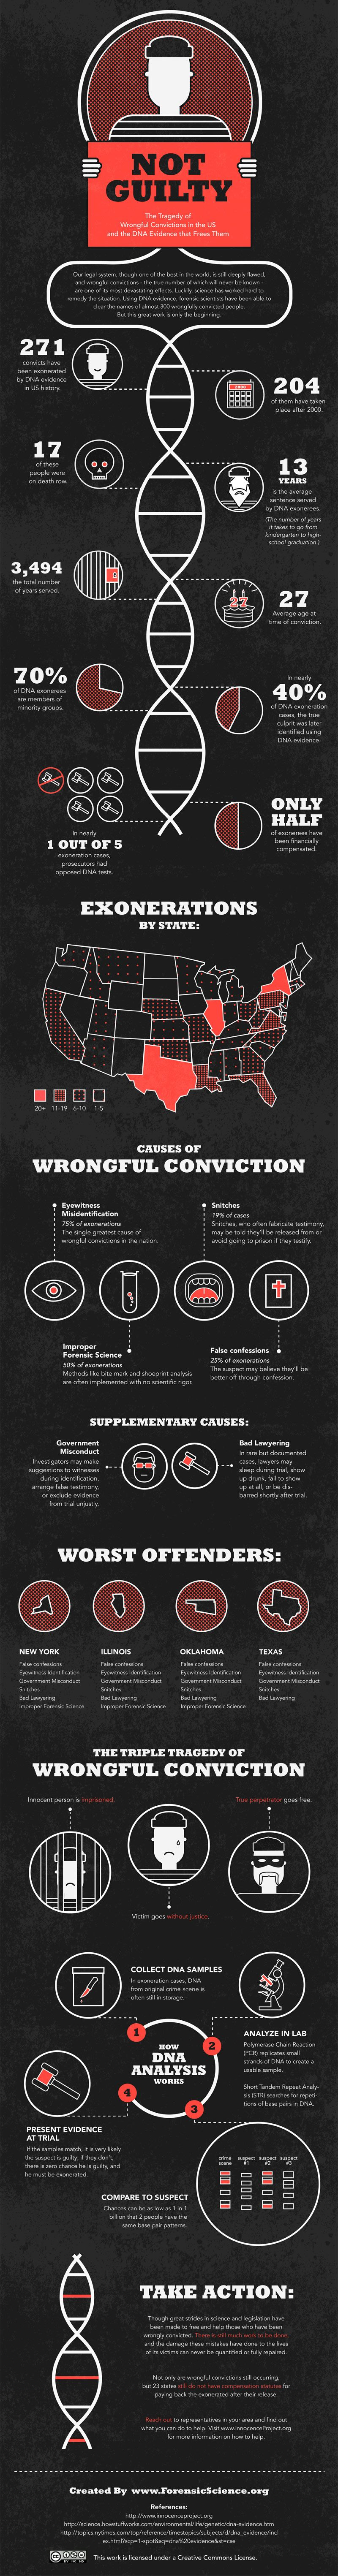 Infographic: Wrongful Conviction Statistics - Daily Inspiration